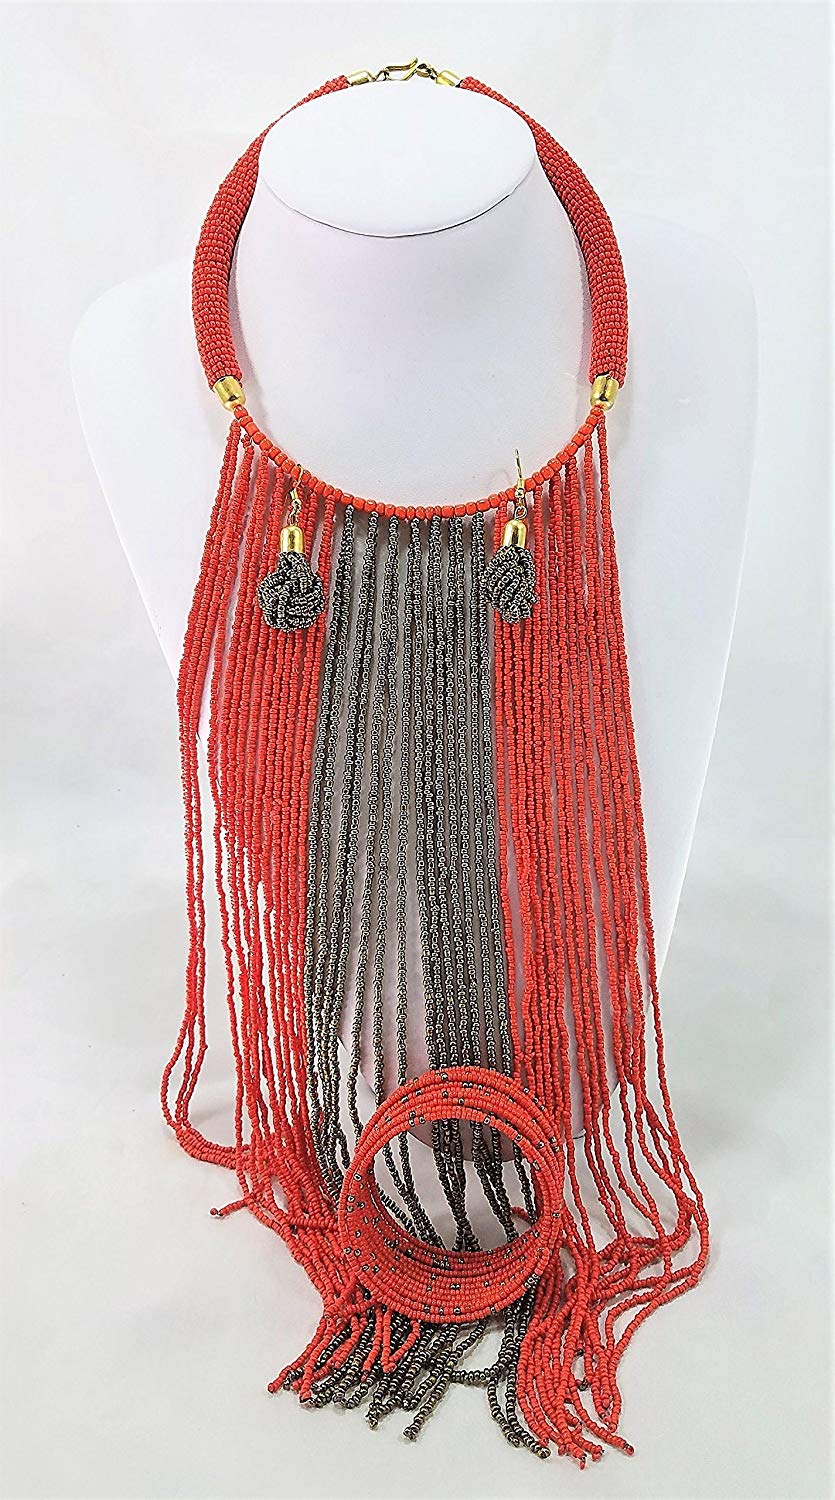 Handmade Orange and Gold Bracelet, Earrings, and Necklace Maasai Masai Jewelry Set